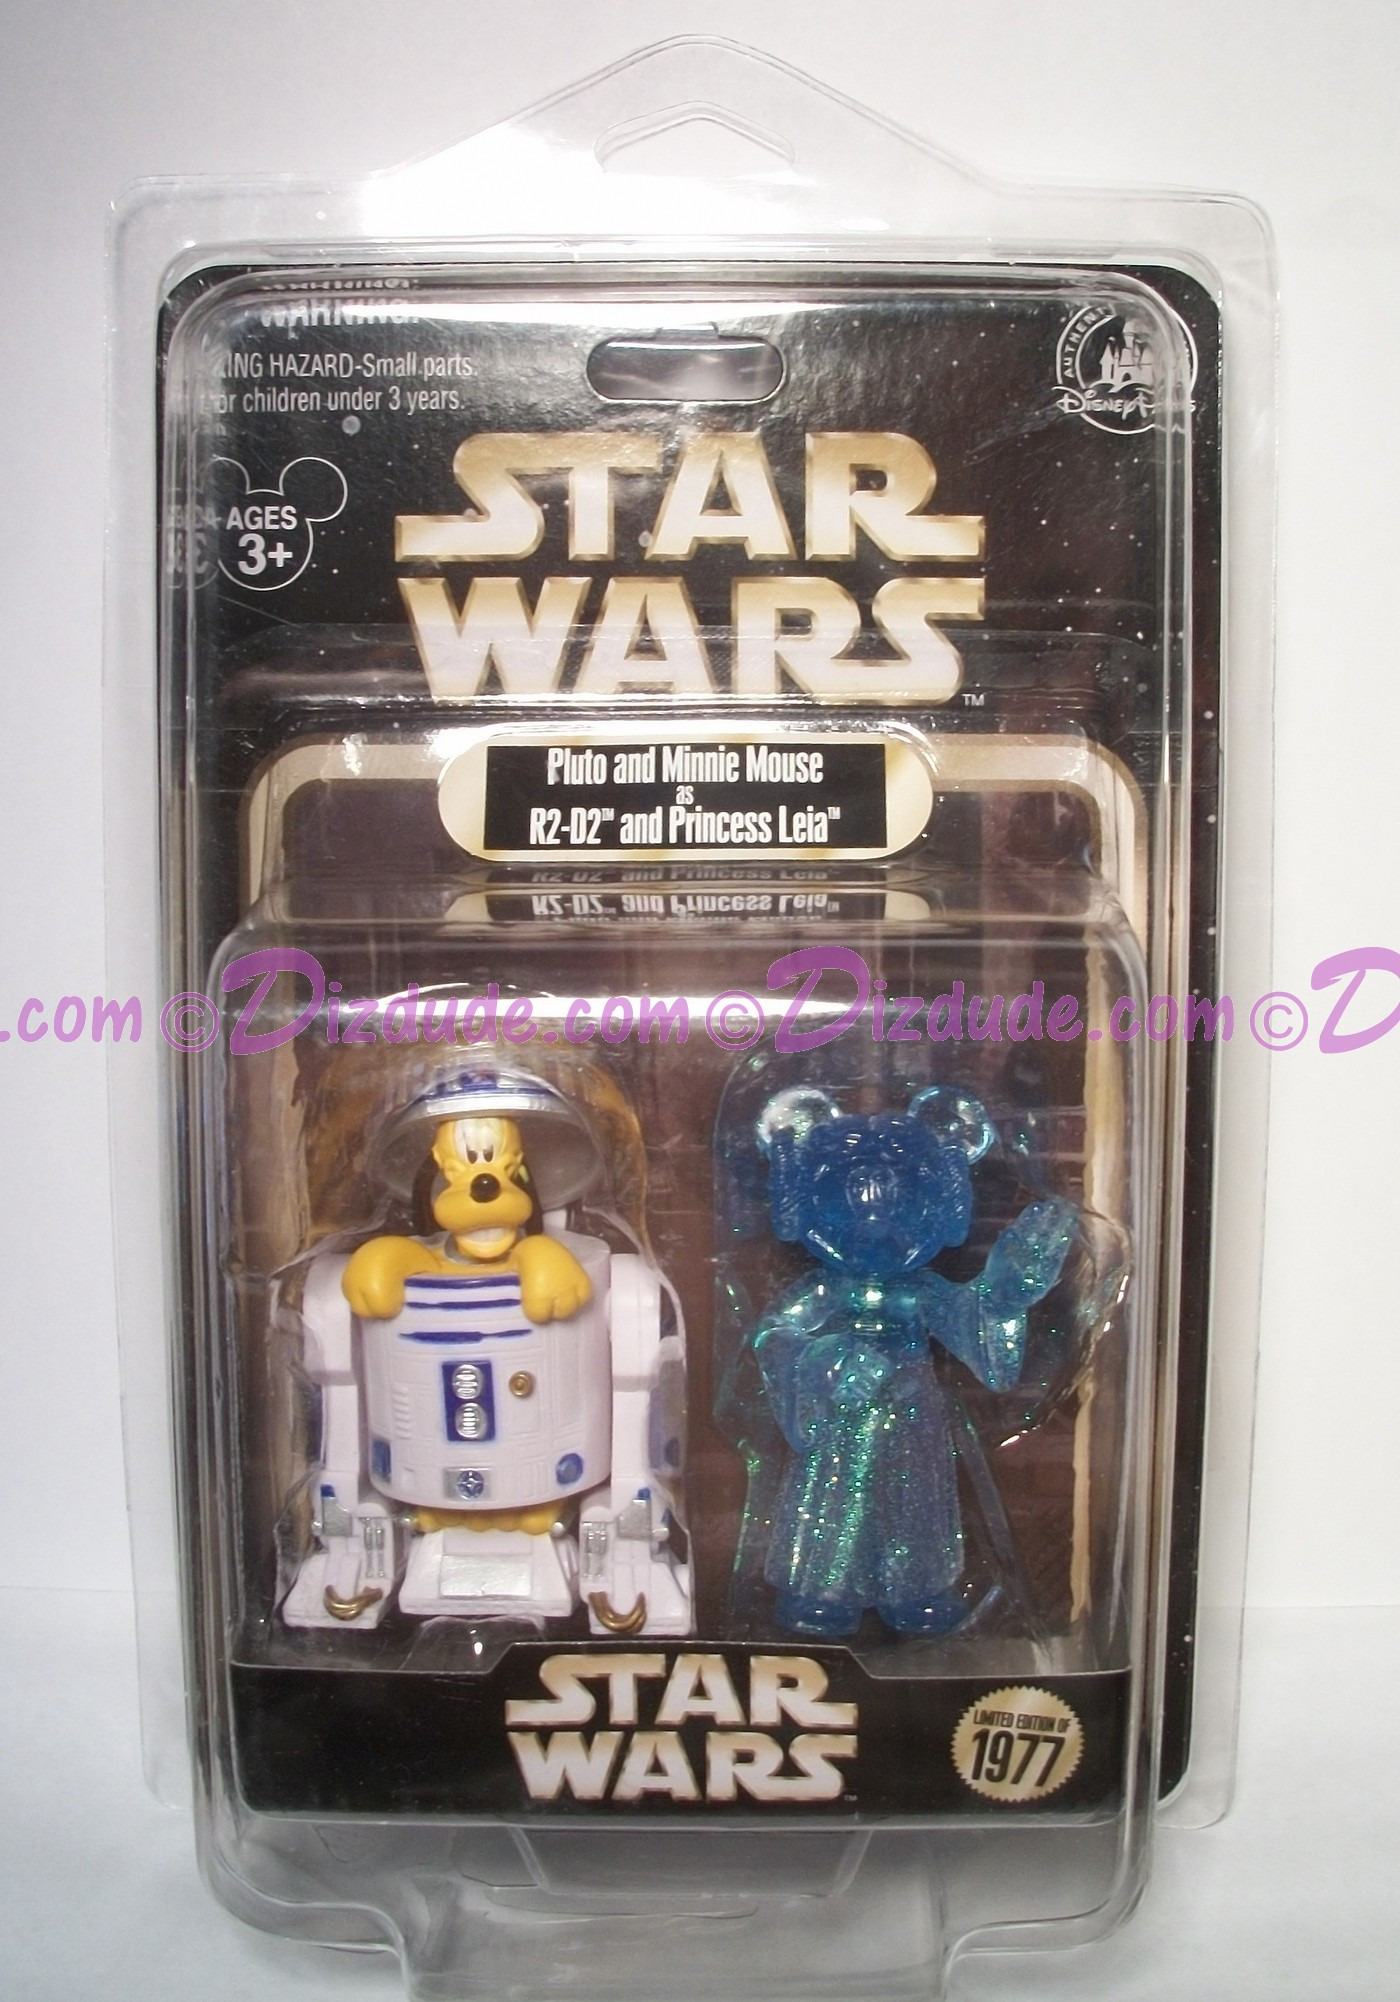 Disney Star Wars Pluto as R2-D2 & Minnie Mouse as Princess Leia Action Figure Individually Numbered Limited Edition 1977 ~ Official Star Wars Weekends 2015 Event © Dizdude.com